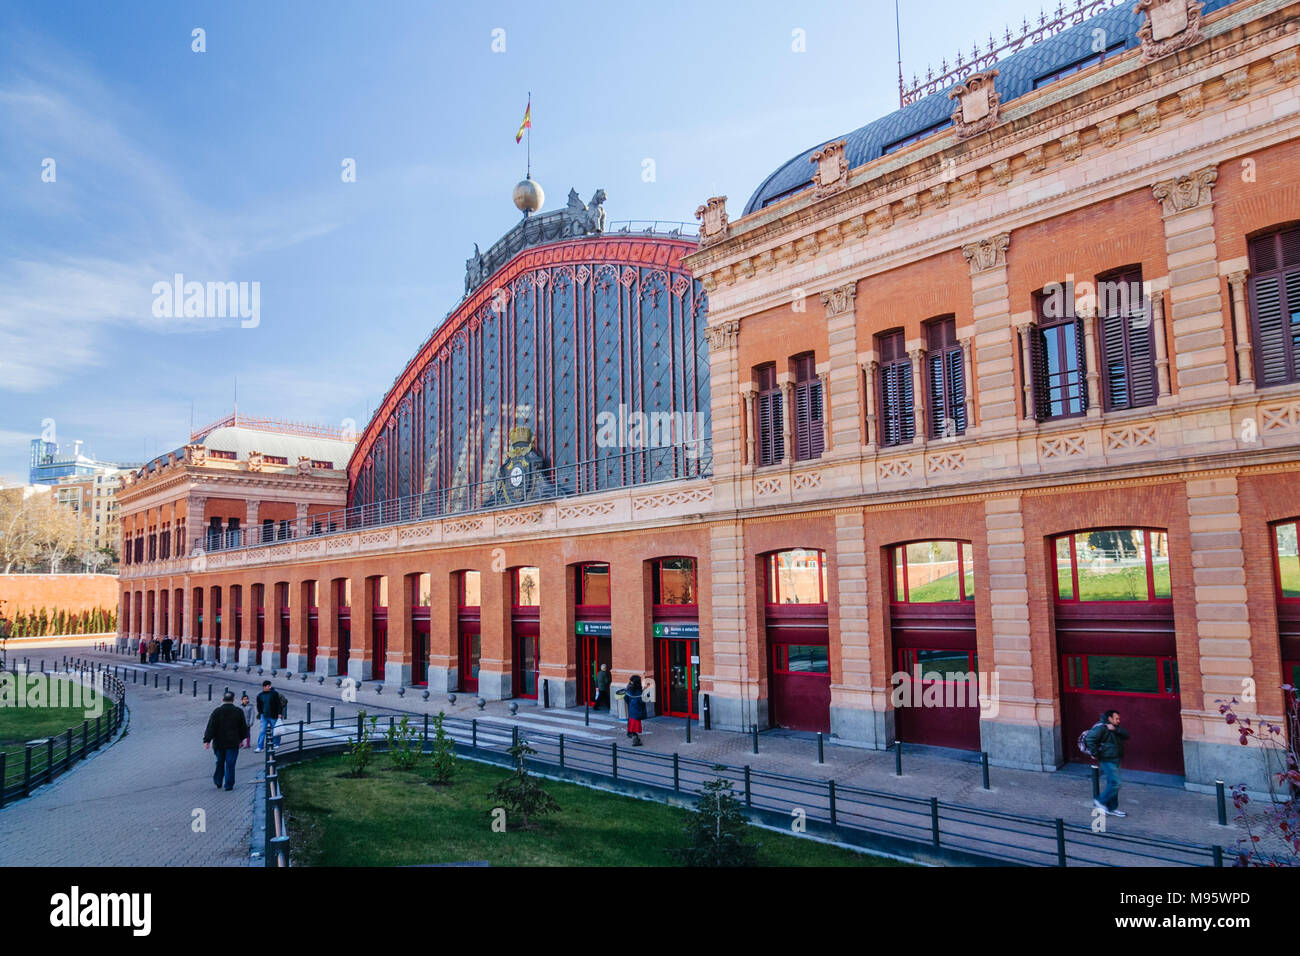 Madrid, Spain : Front view of Atocha train Station at Plaza del Emperador Carlos V (Emperor Charles V Square) inaugurated on 9 February 1851. - Stock Image